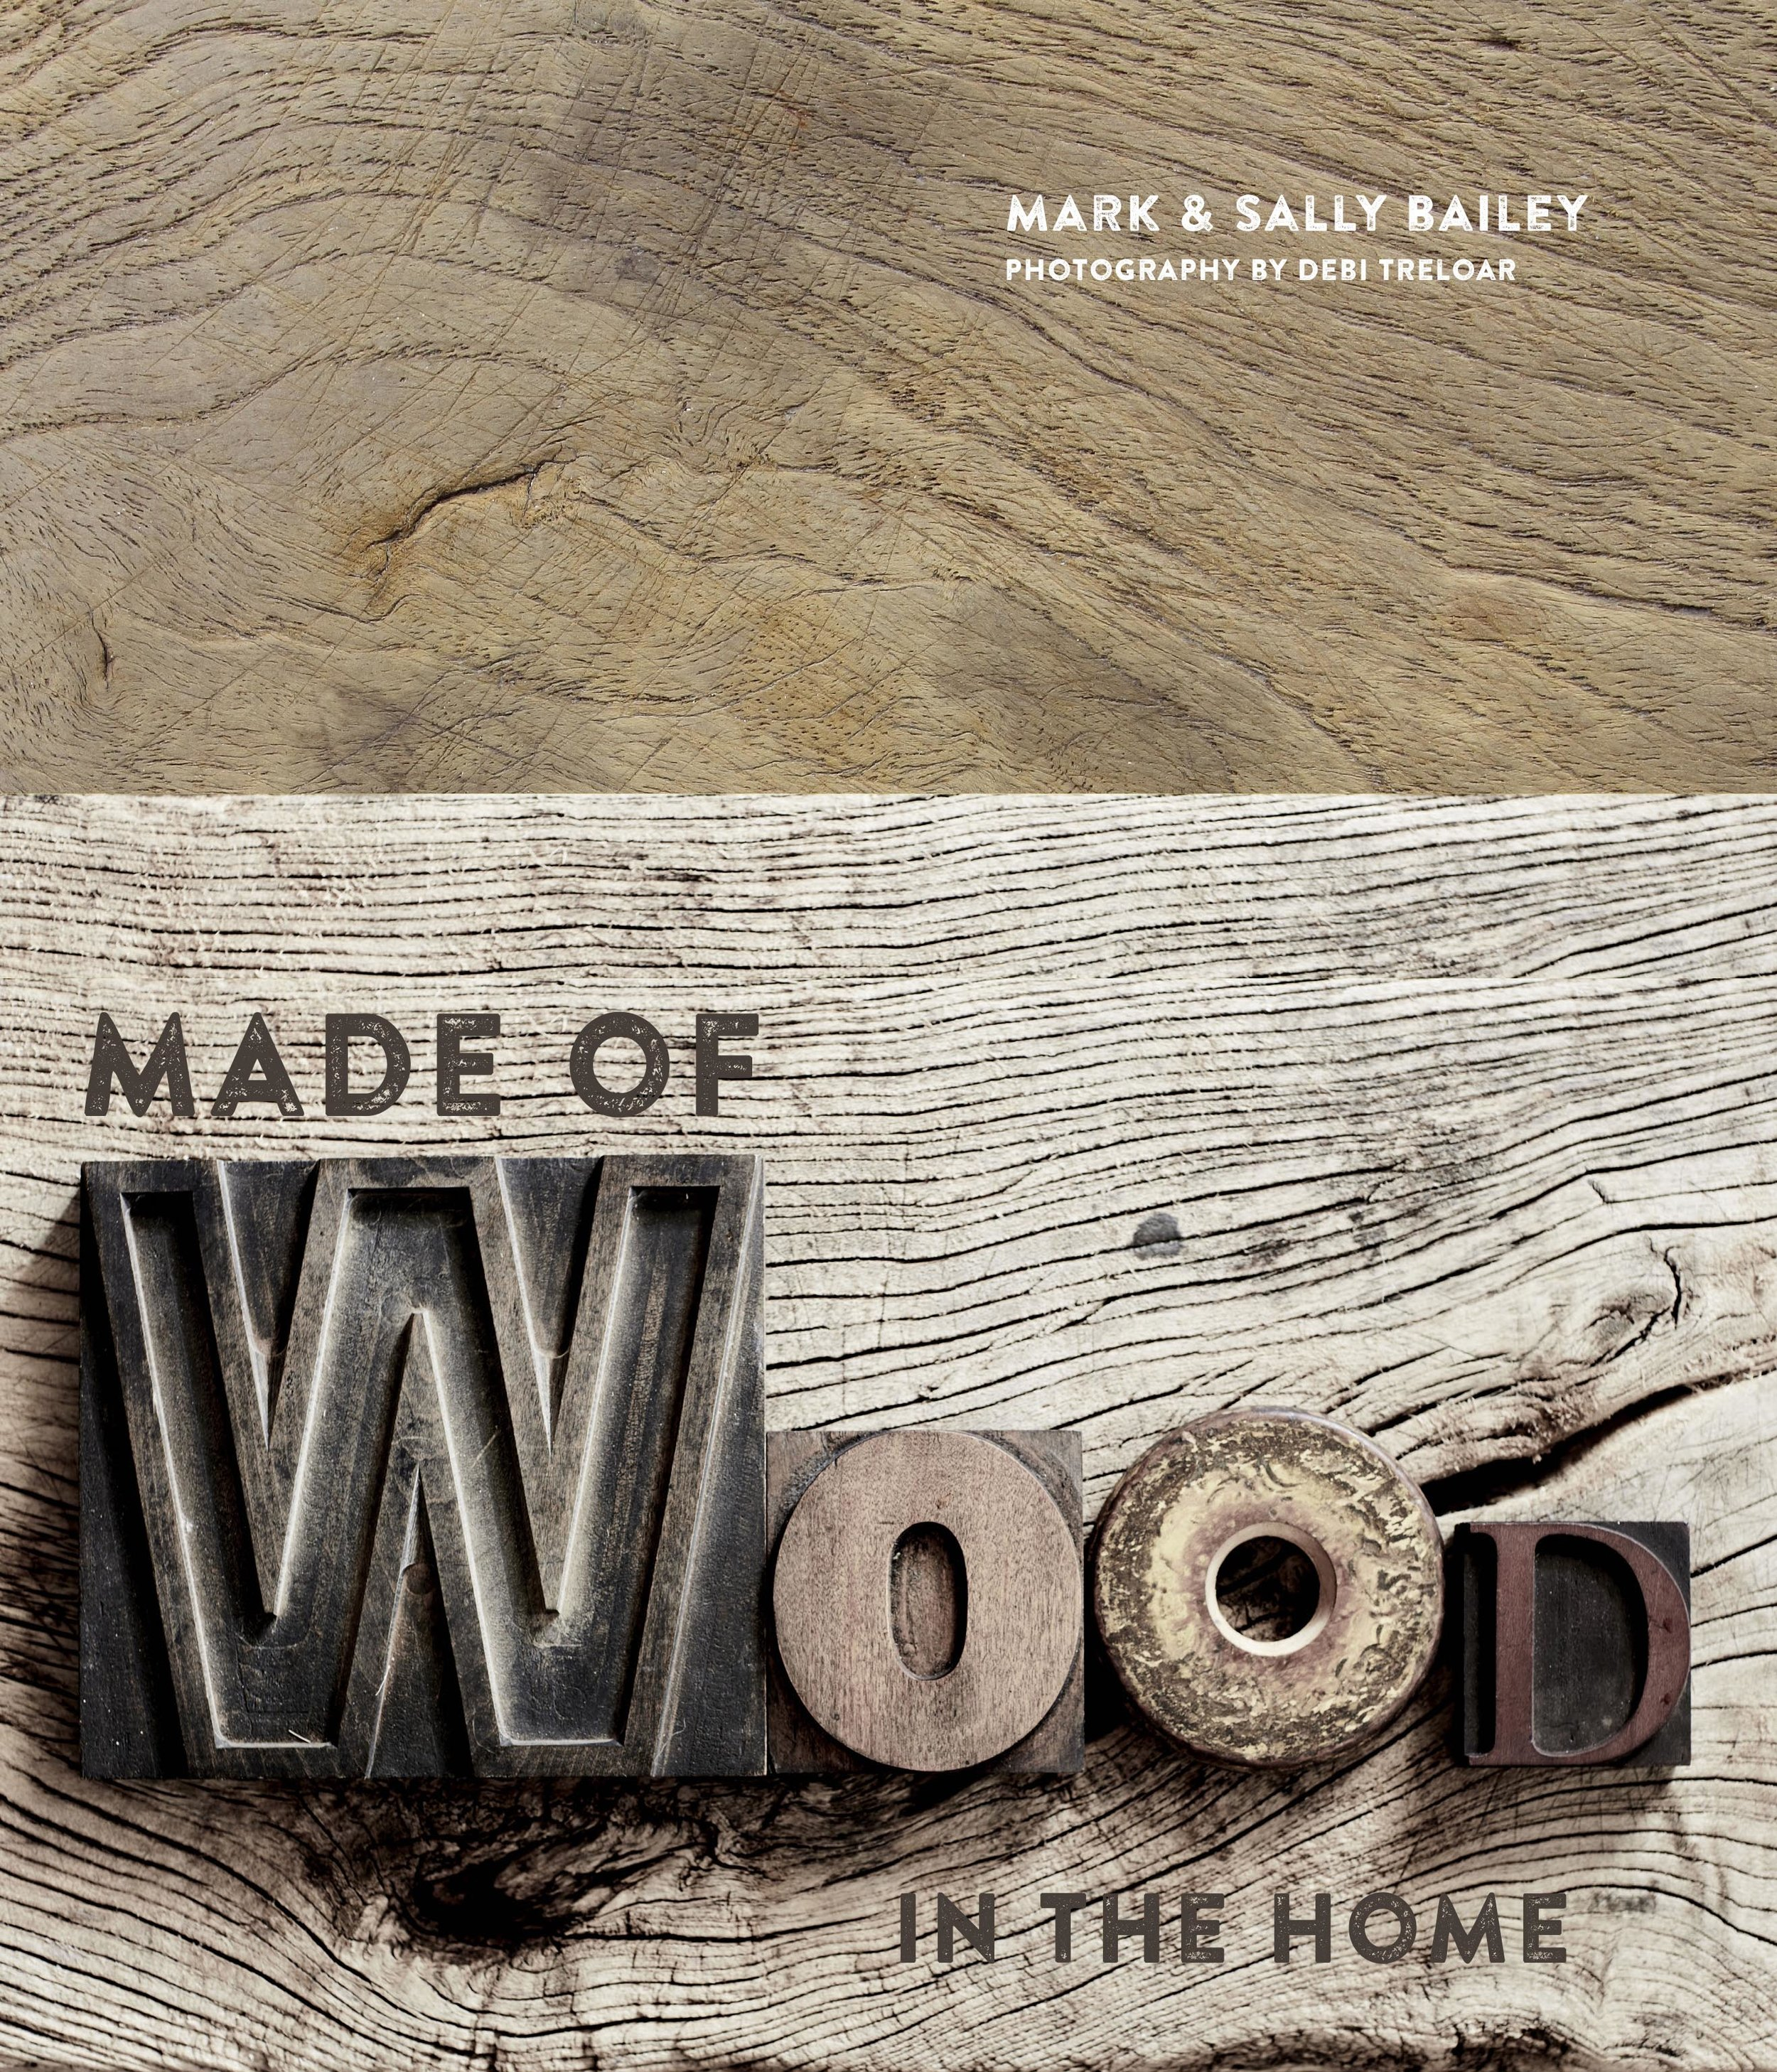 madeofwood_bookcover.jpg